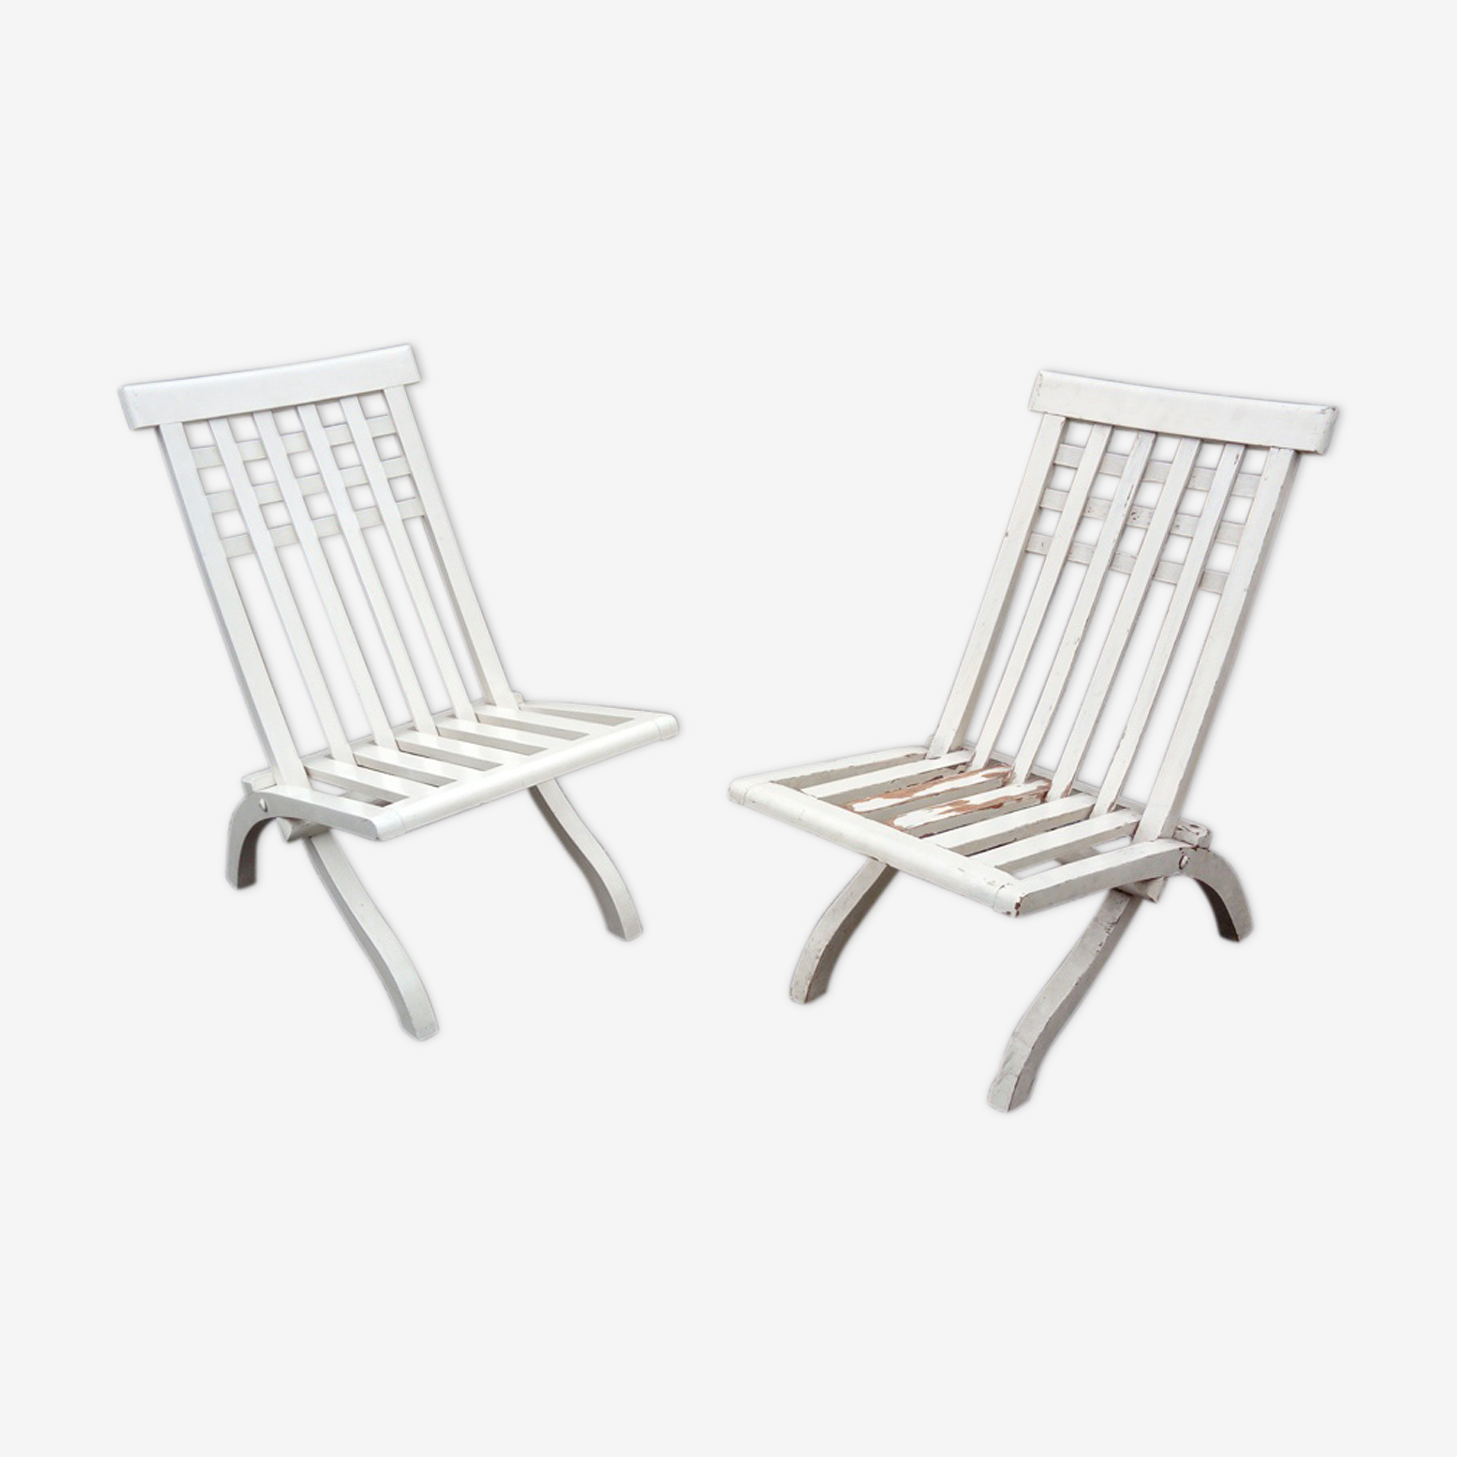 Pair of chairs of Robert Mallet-Stevens for Pierre Dariel